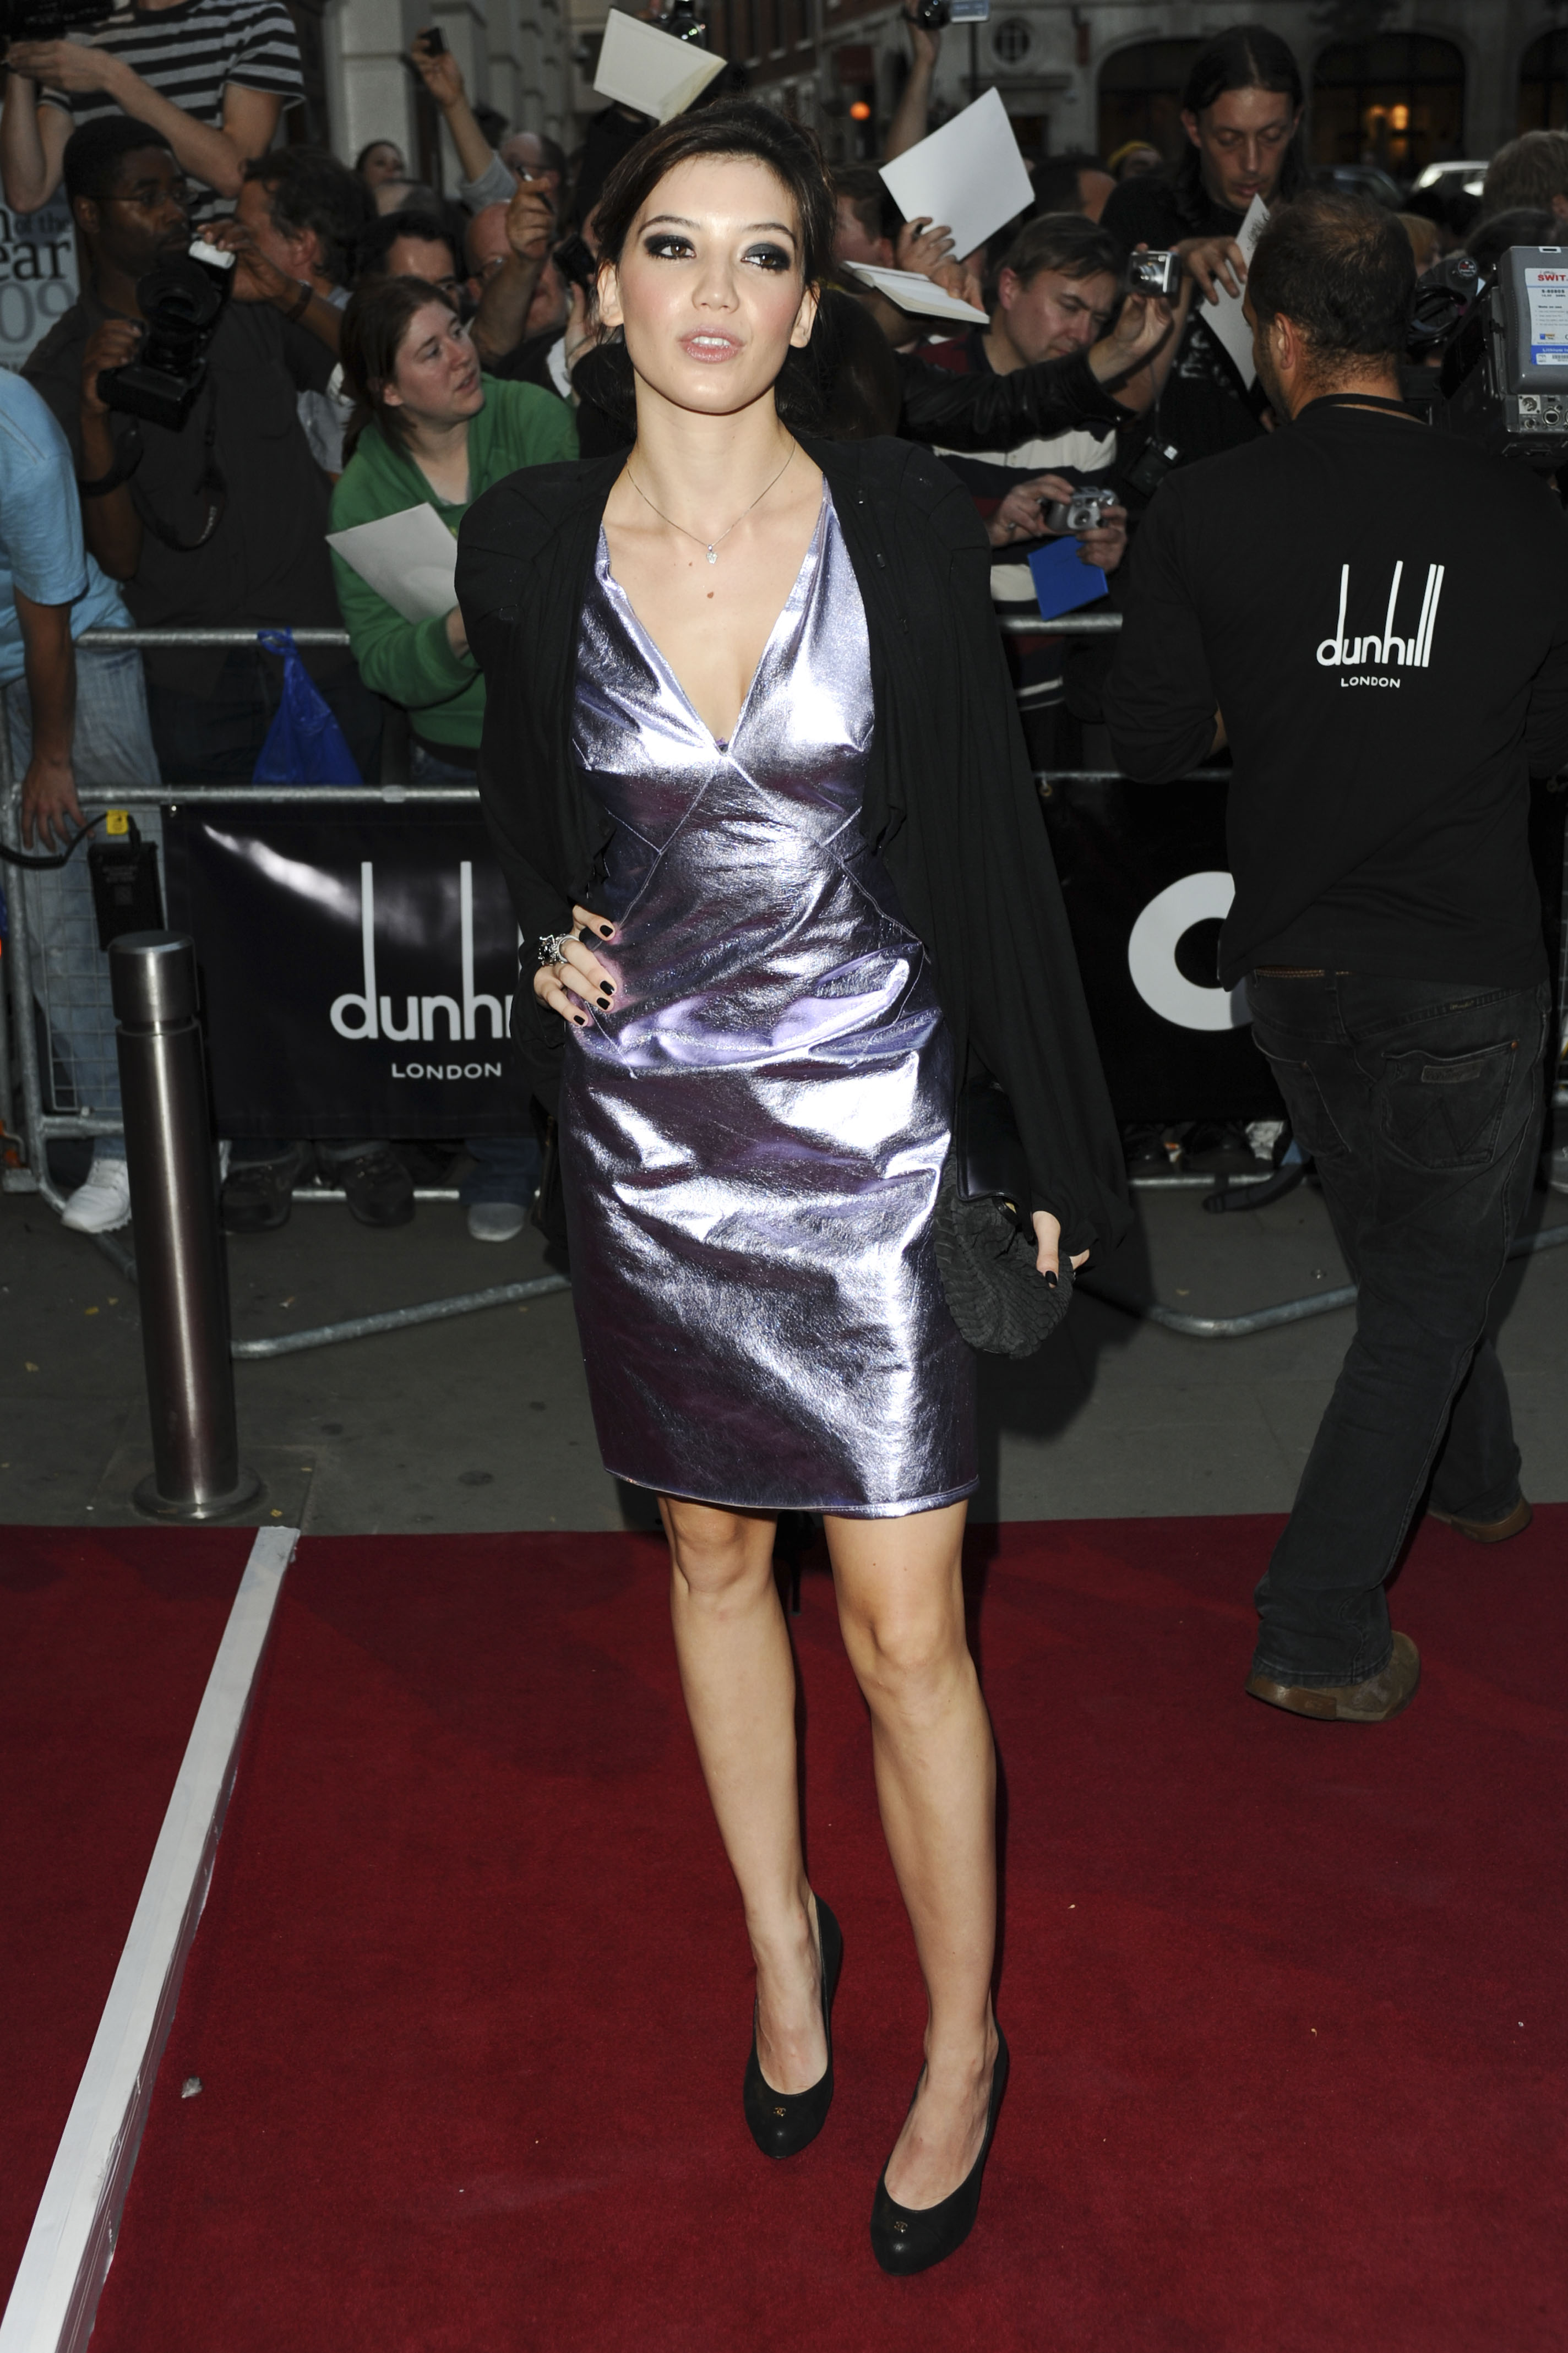 20153_Daisy_Lowe_-_GQ_Men_Of_The_Year_Awards_8th_Sept_2009_4124_122_110lo.jpg